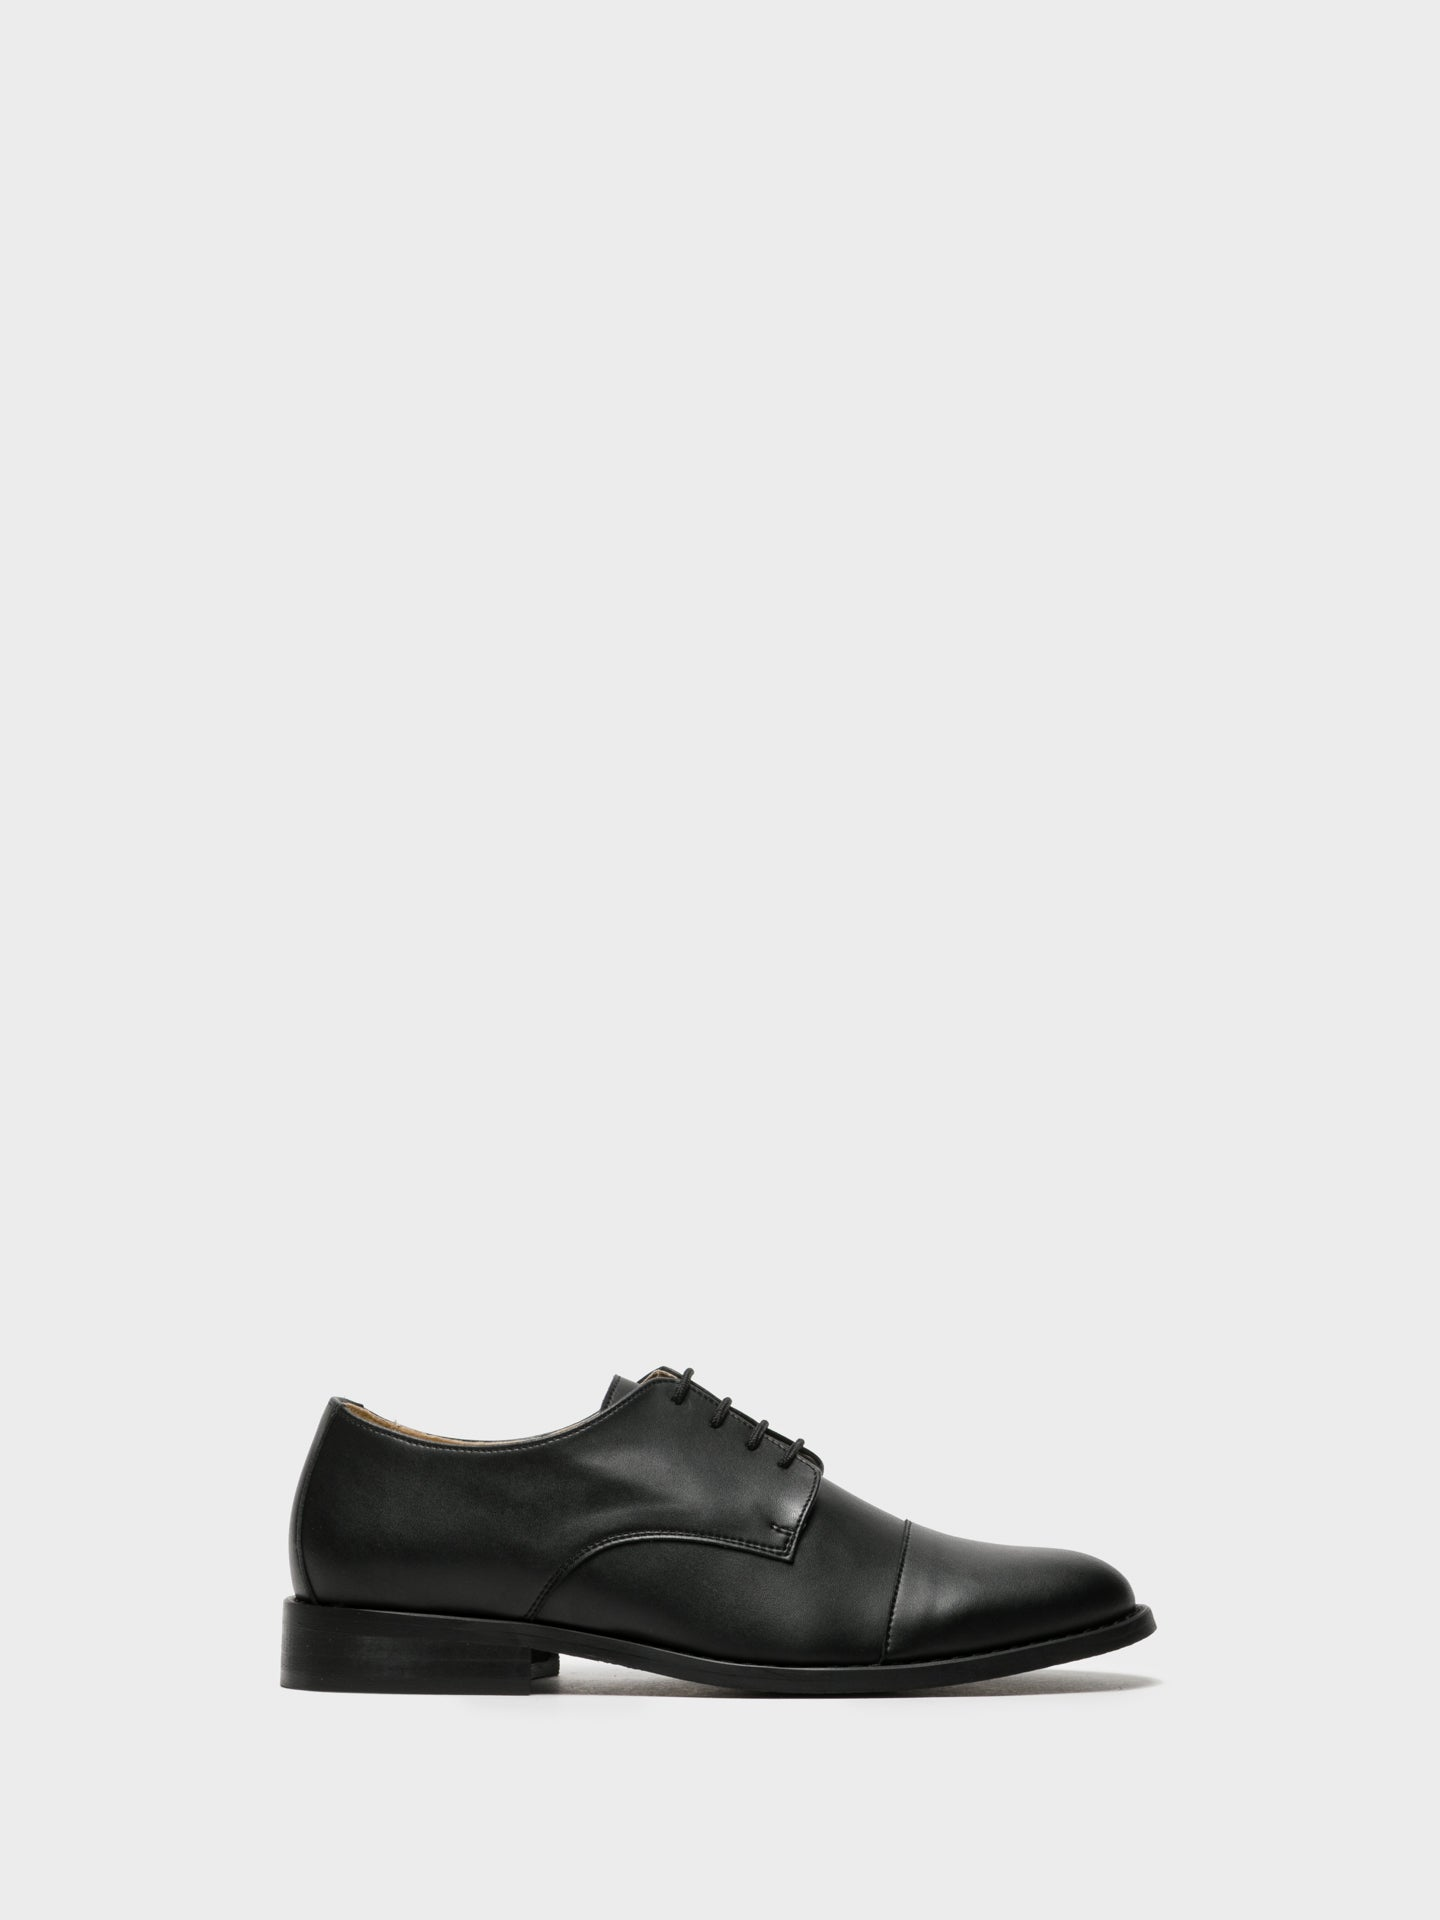 NAE Vegan Shoes Black Lace-up Shoes